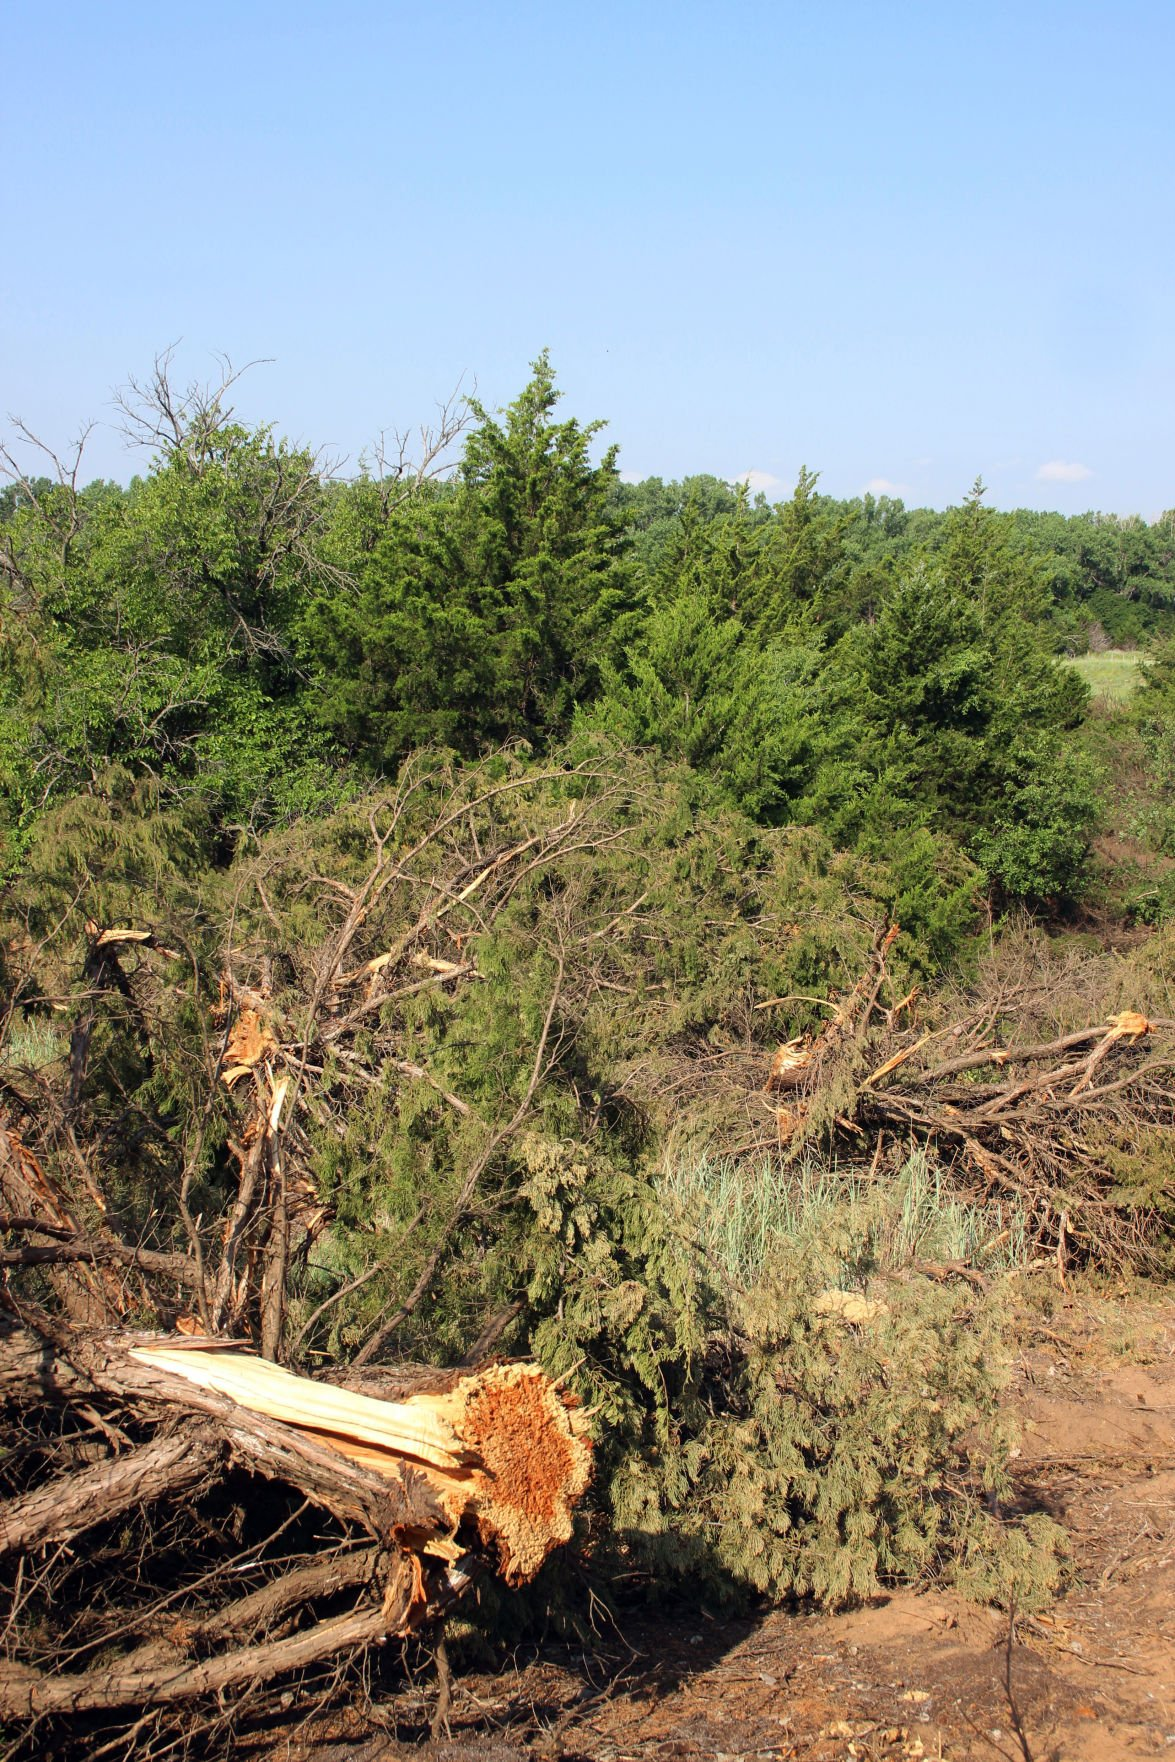 Pictures of cedar trees - The Disruptive Invasion Of Cedar Trees Such As Eastern Redcedar Blueberry Juniper And Redberry Juniper Has Become A Major Issue For Rangelands